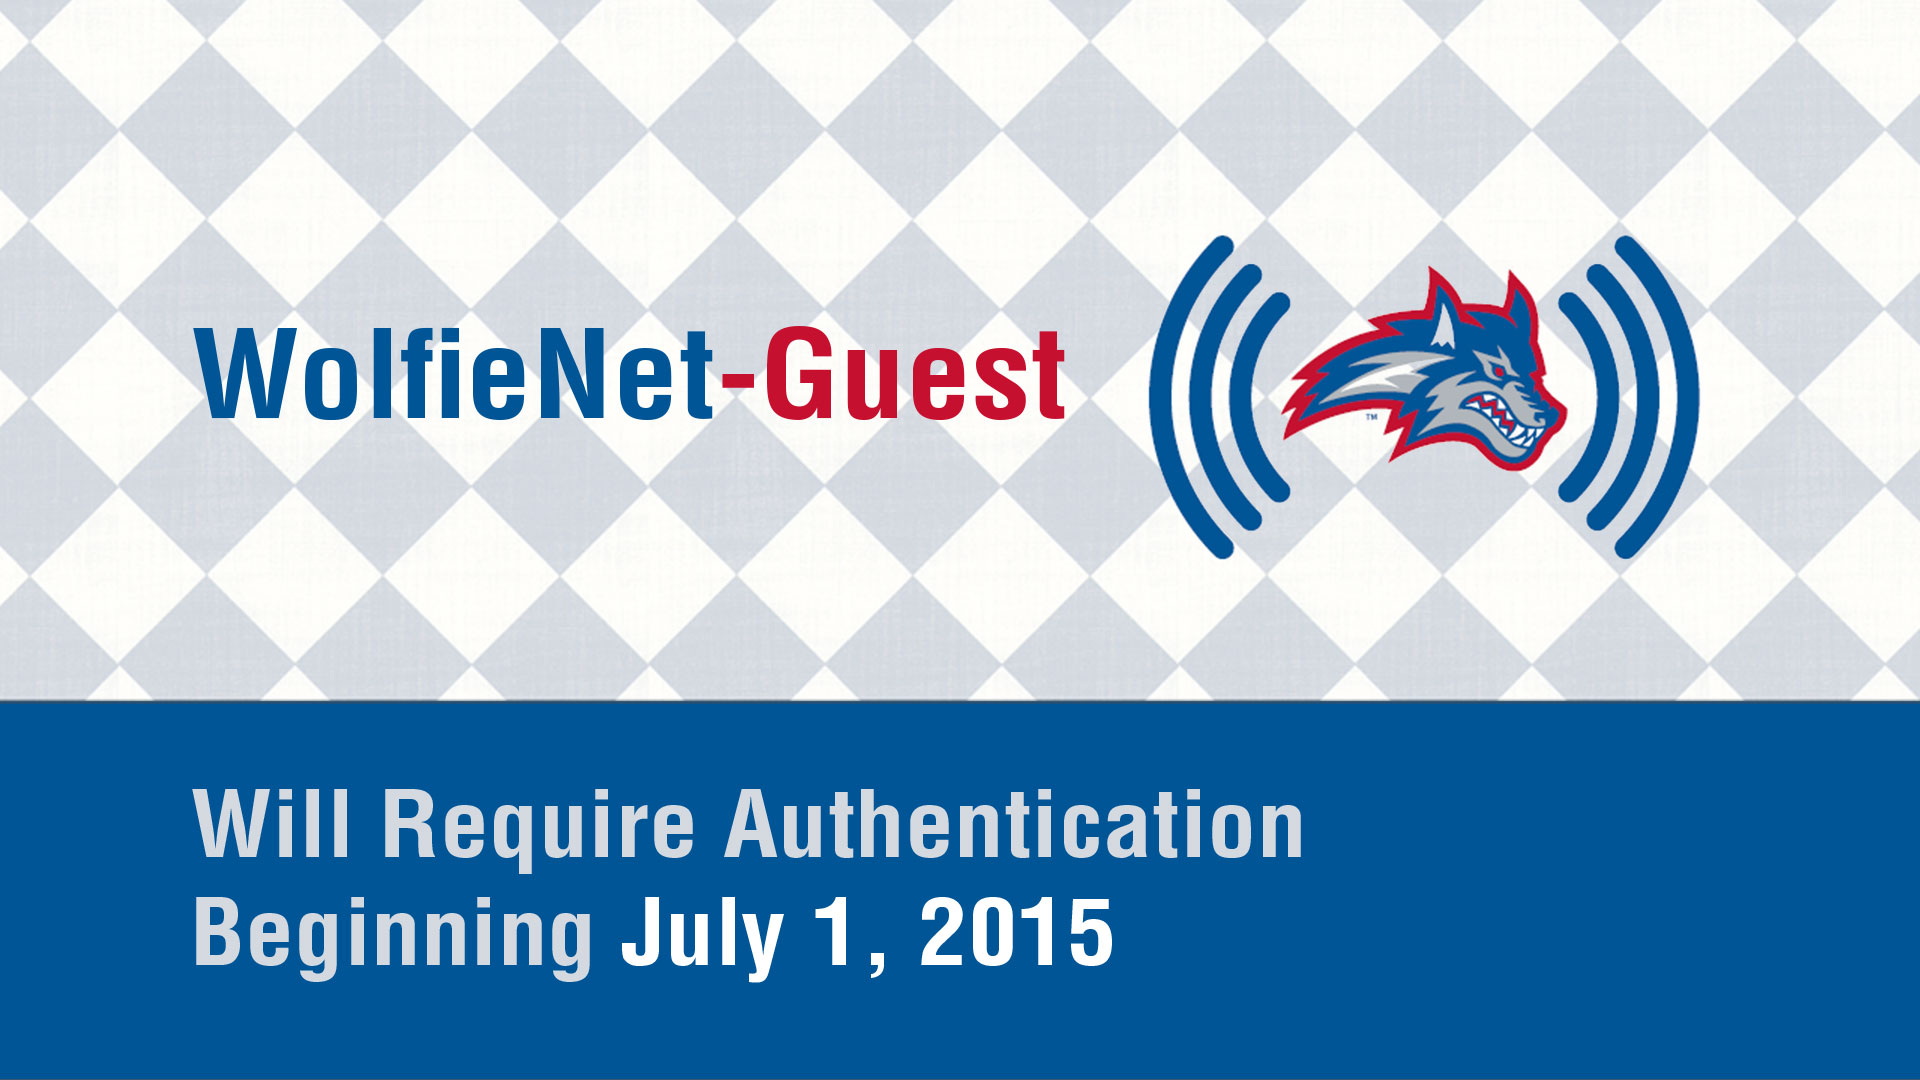 WolfieNet-Guest Authentication Coming July 1, 2015